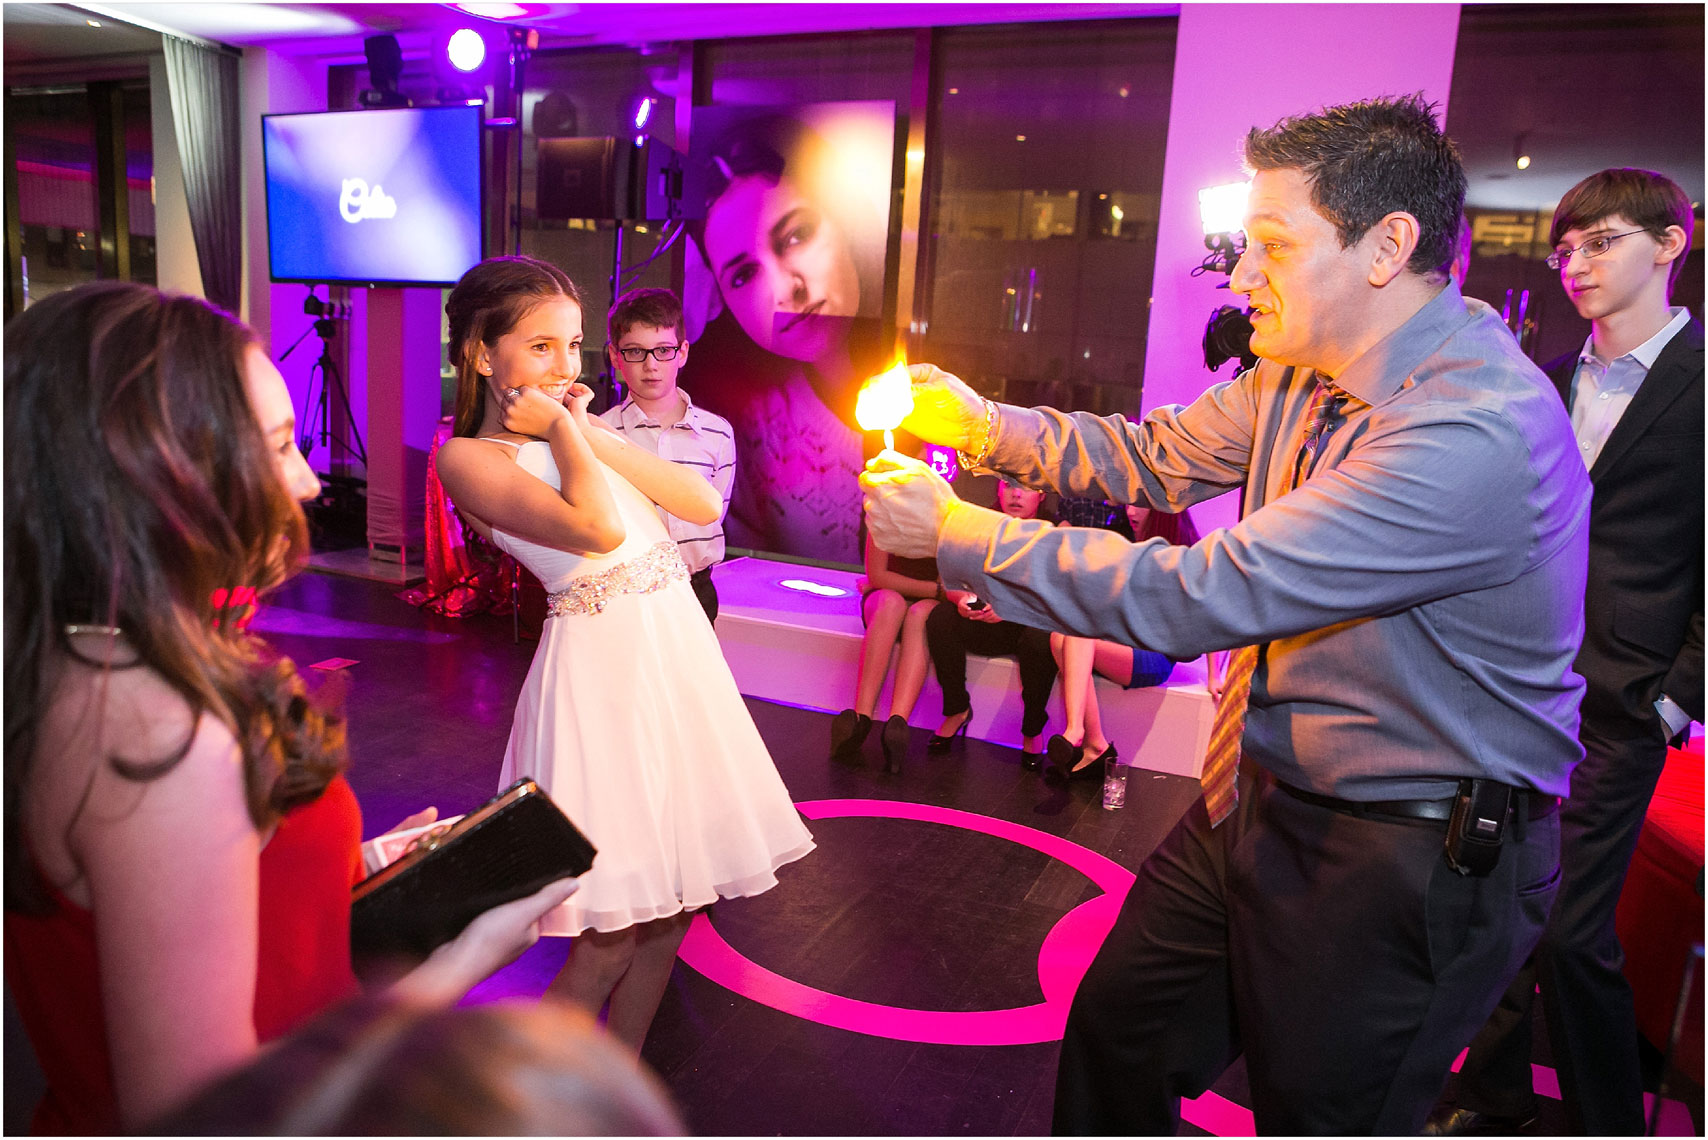 160205-1157_WEB-mitzvah-photography